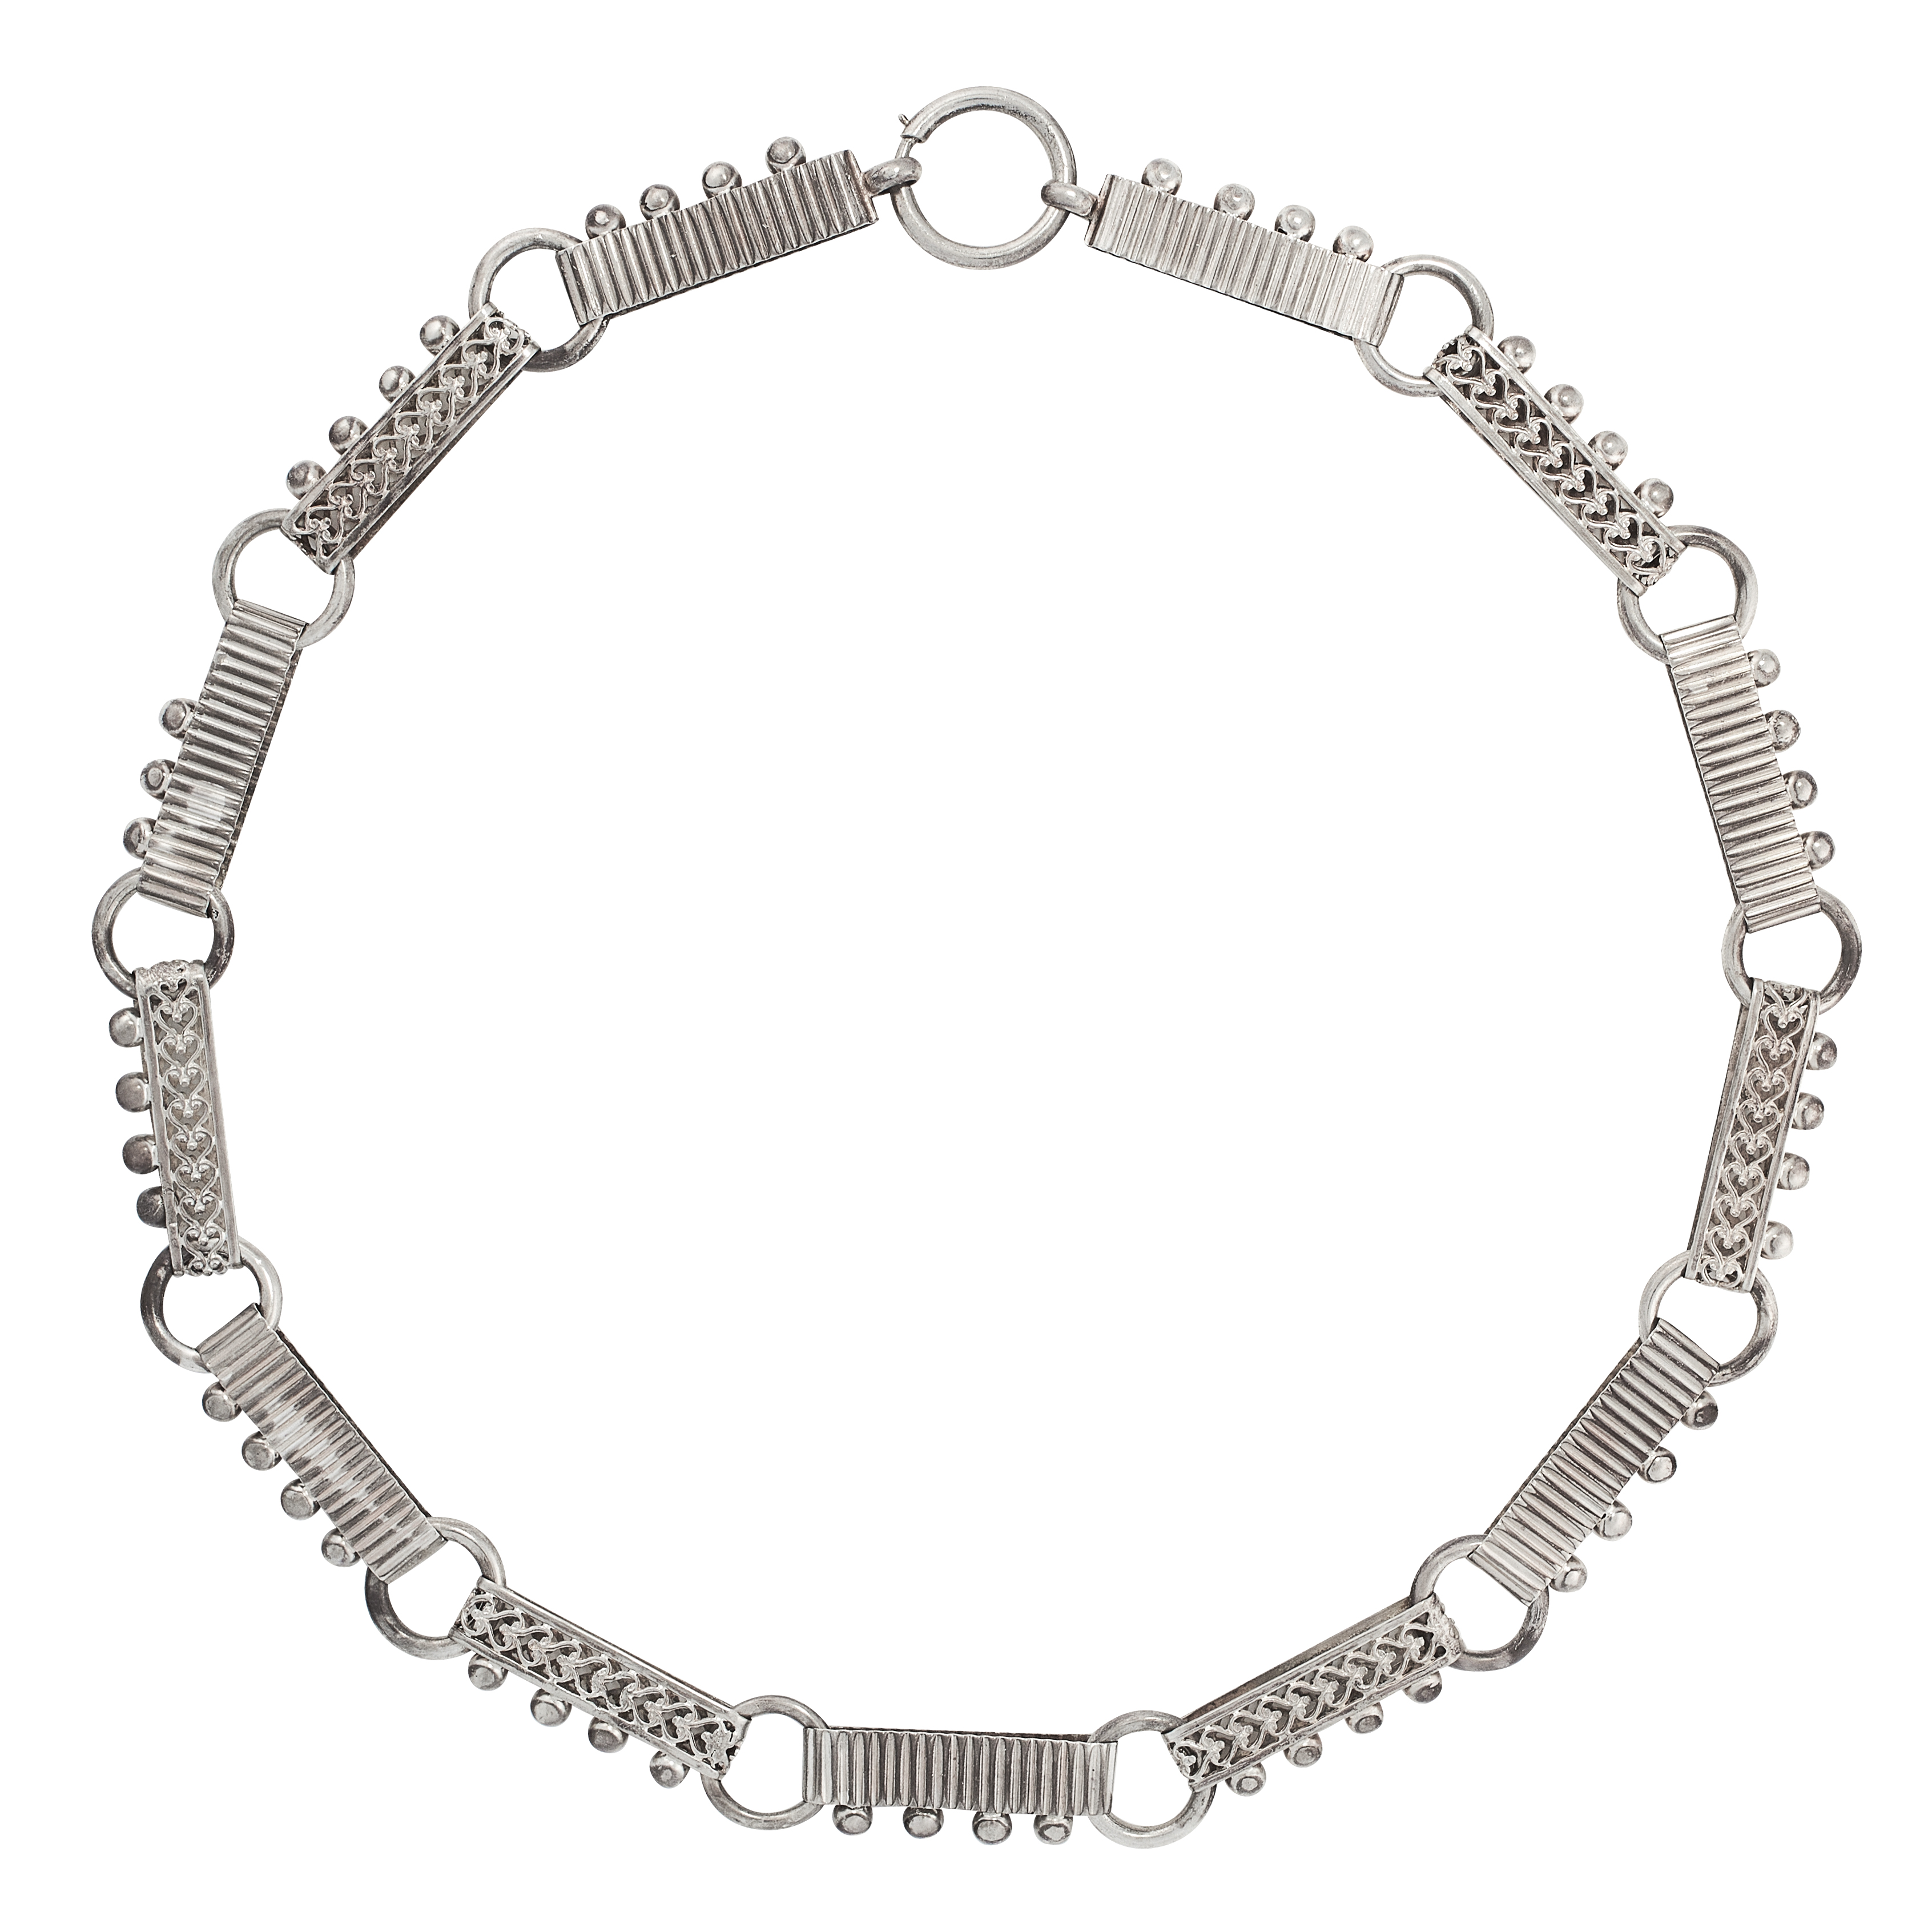 AN ANTIQUE SILVER COLLAR NECKLACE comprising of alternating decorated batons and circular links,